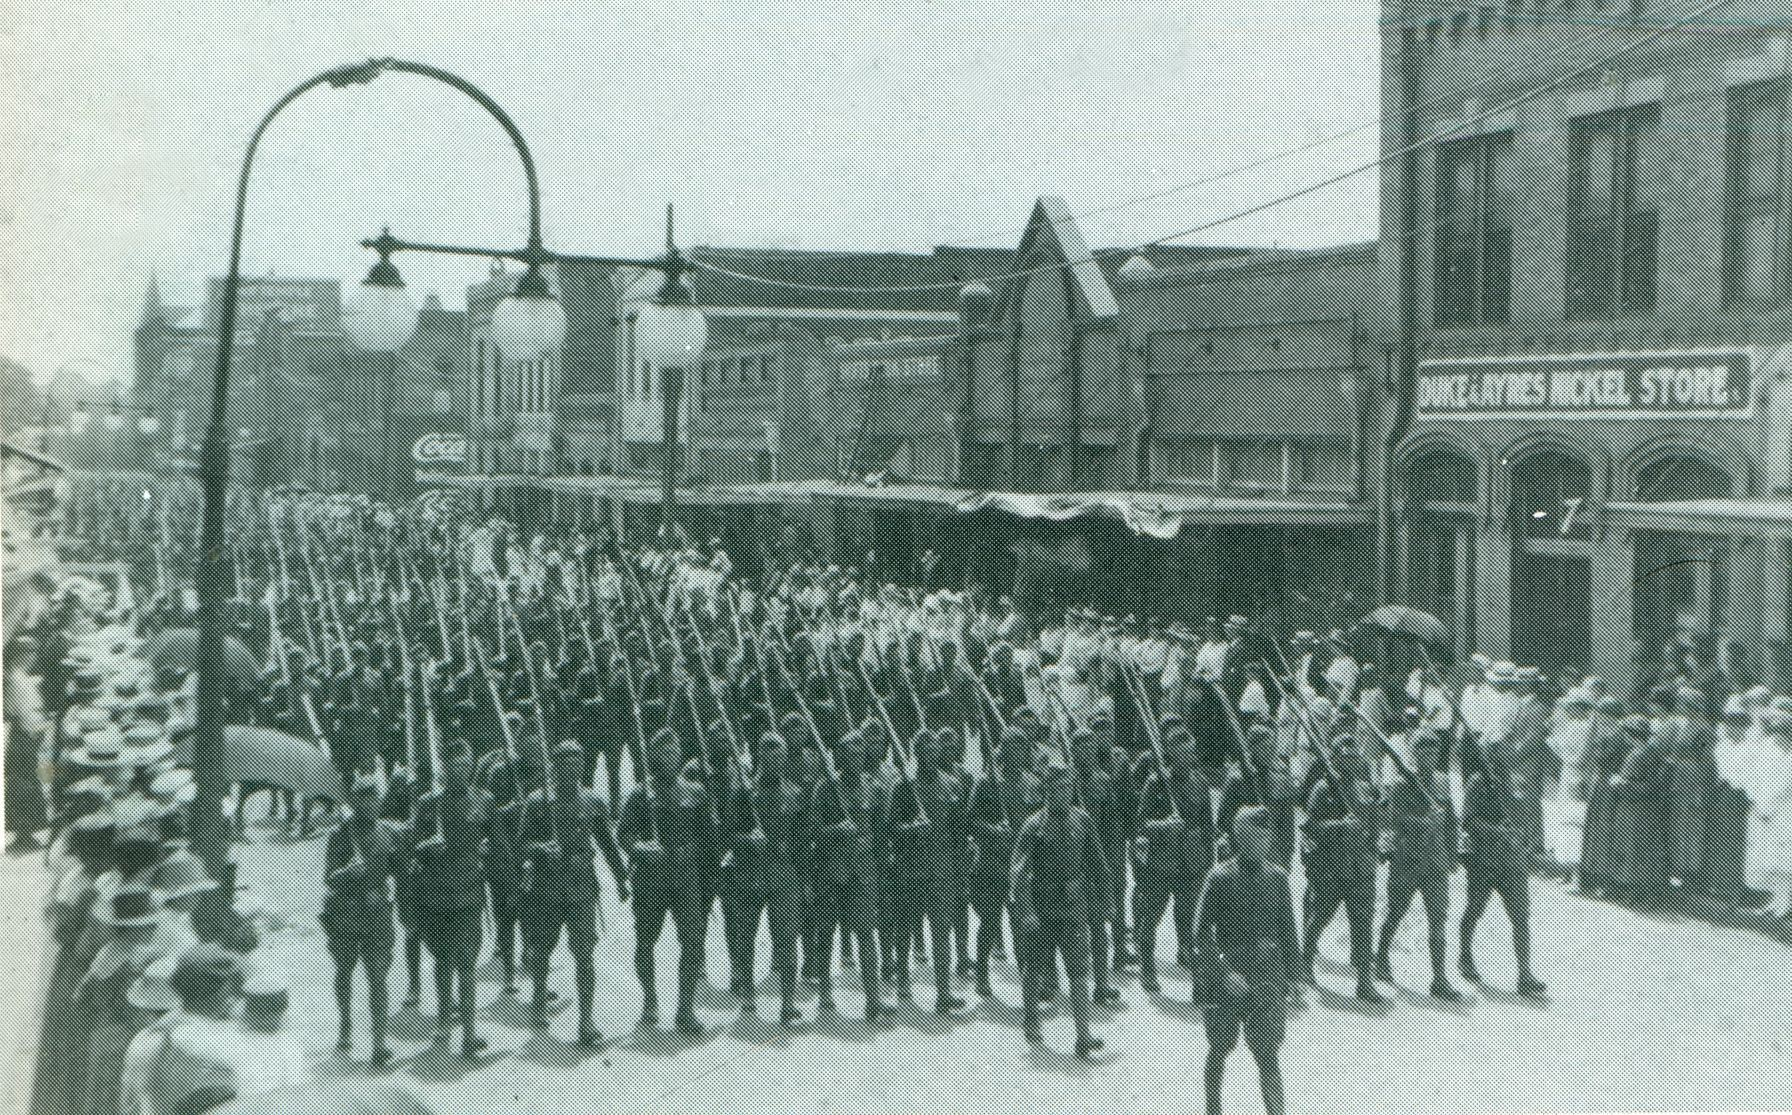 Military Parade on Spring Street - Late 1910's